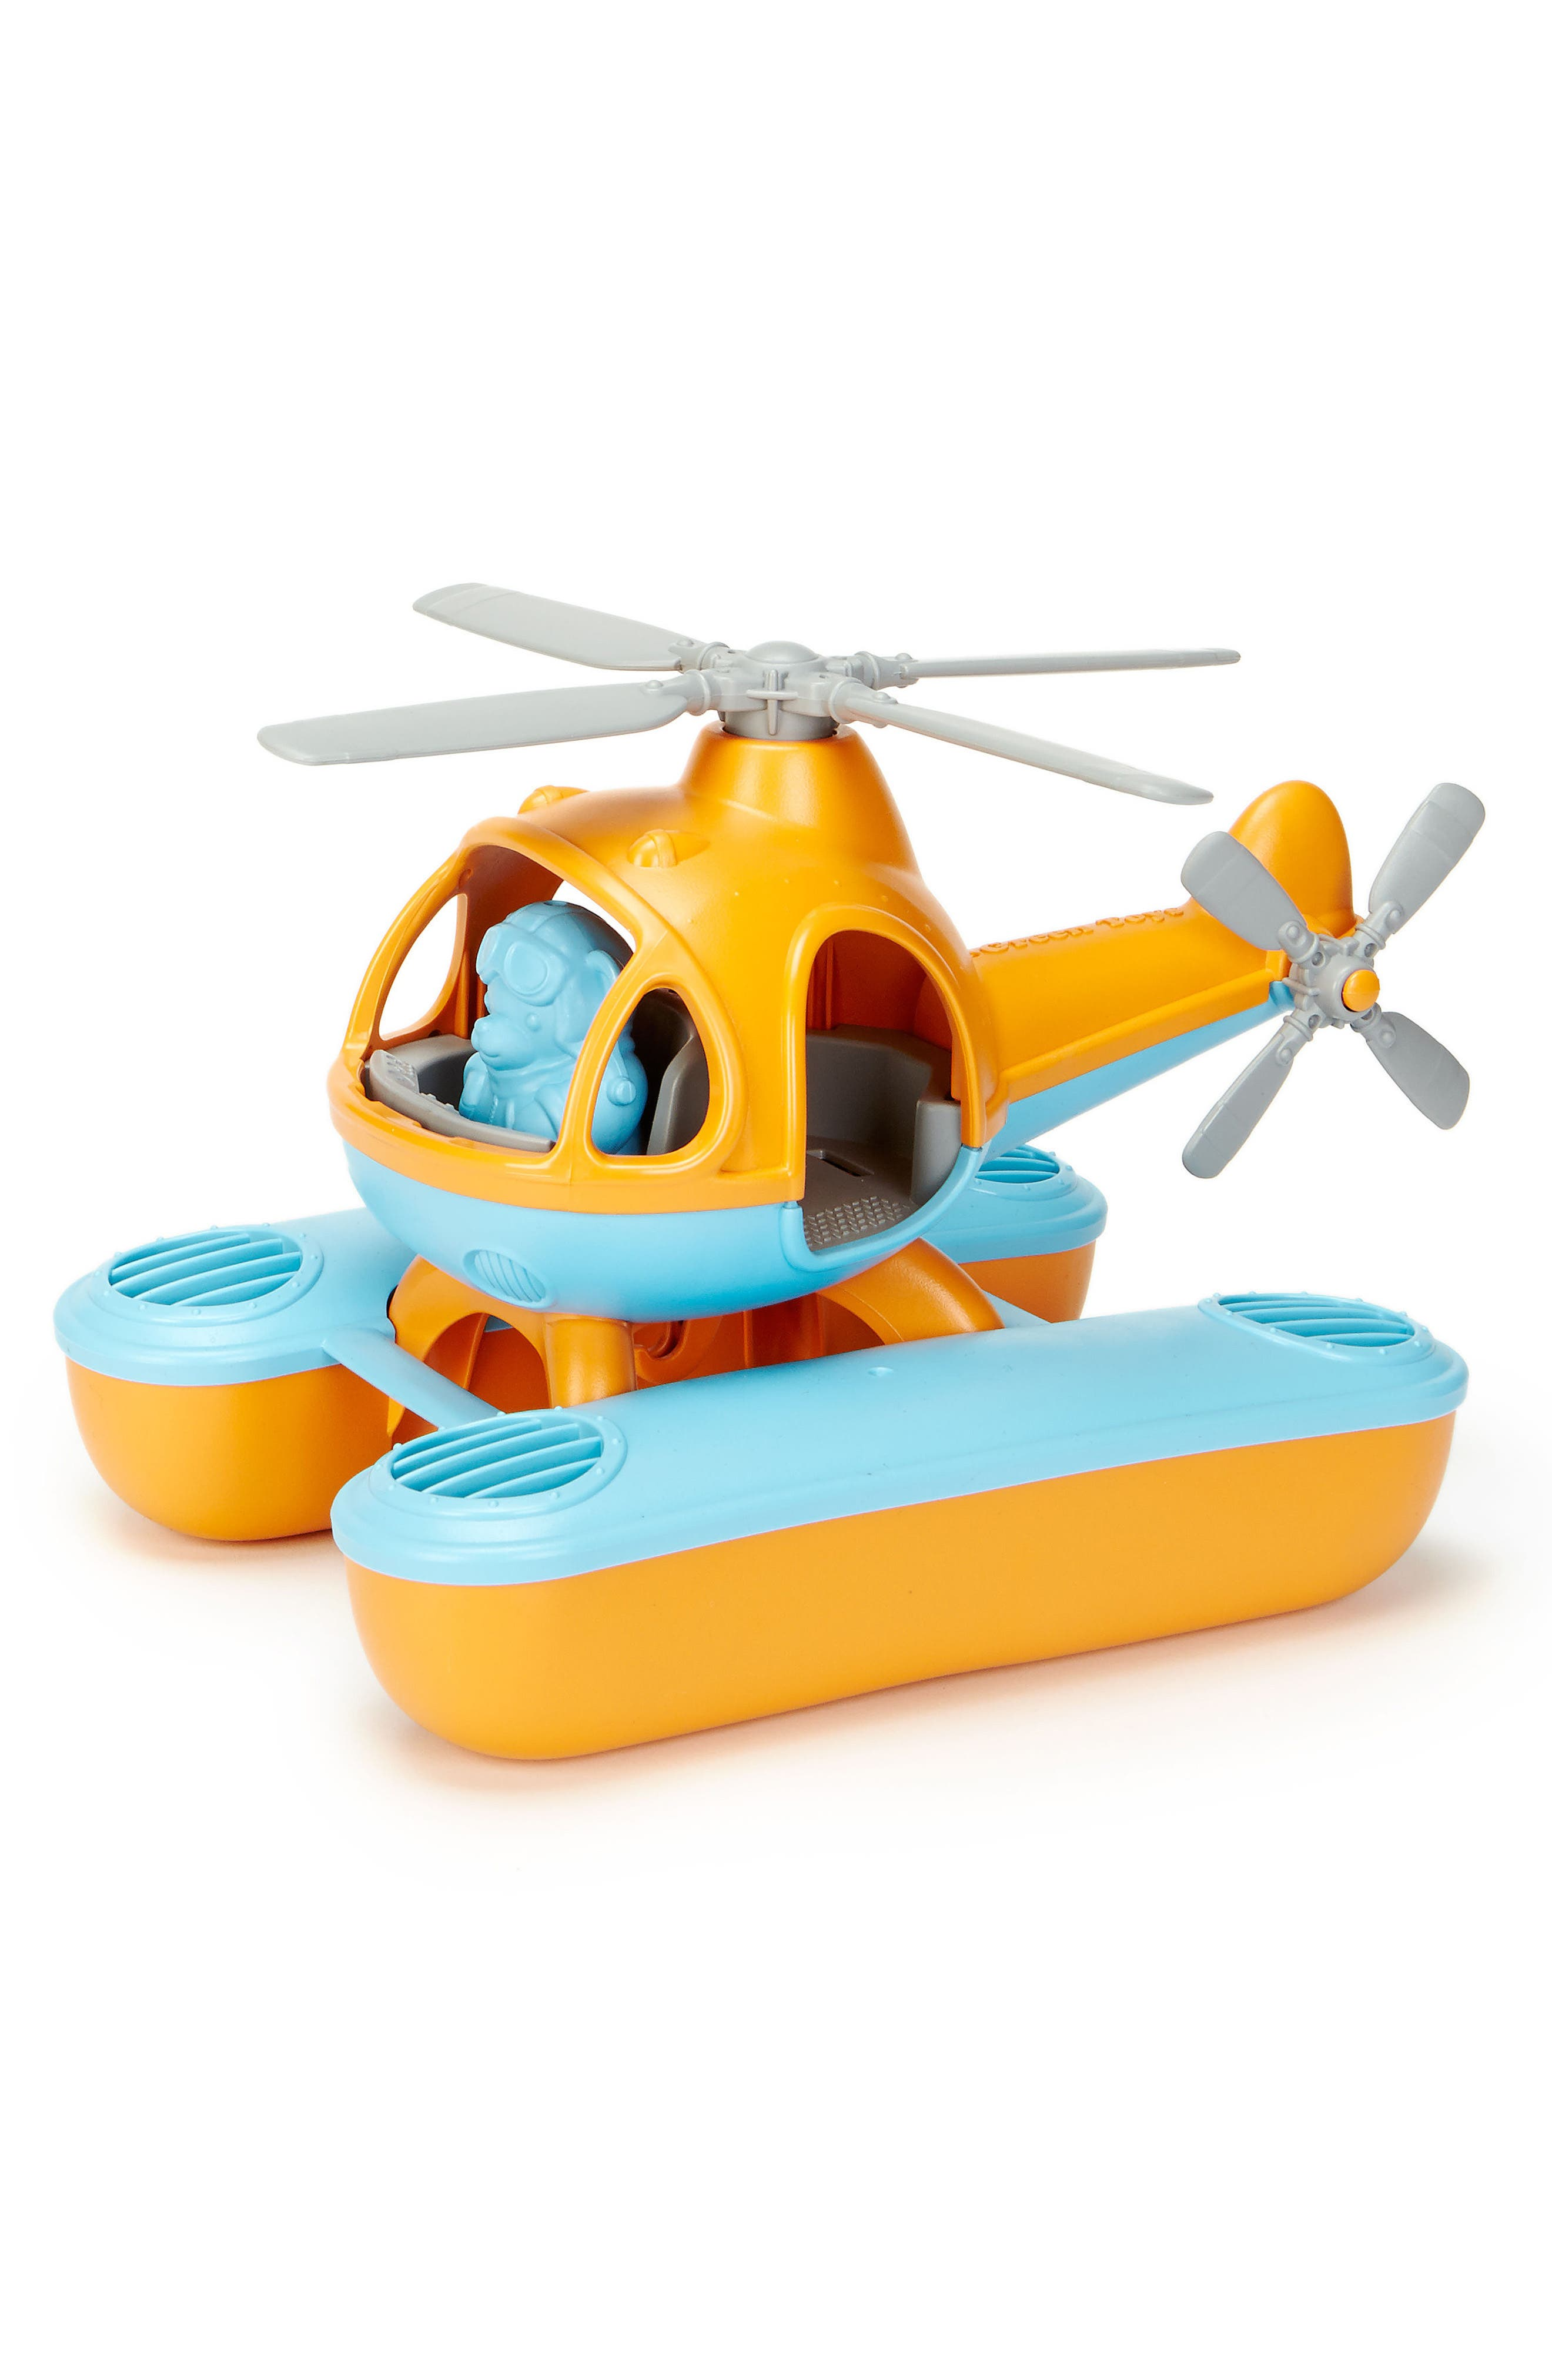 Two-Piece Seacopter Toy,                             Alternate thumbnail 3, color,                             Orange